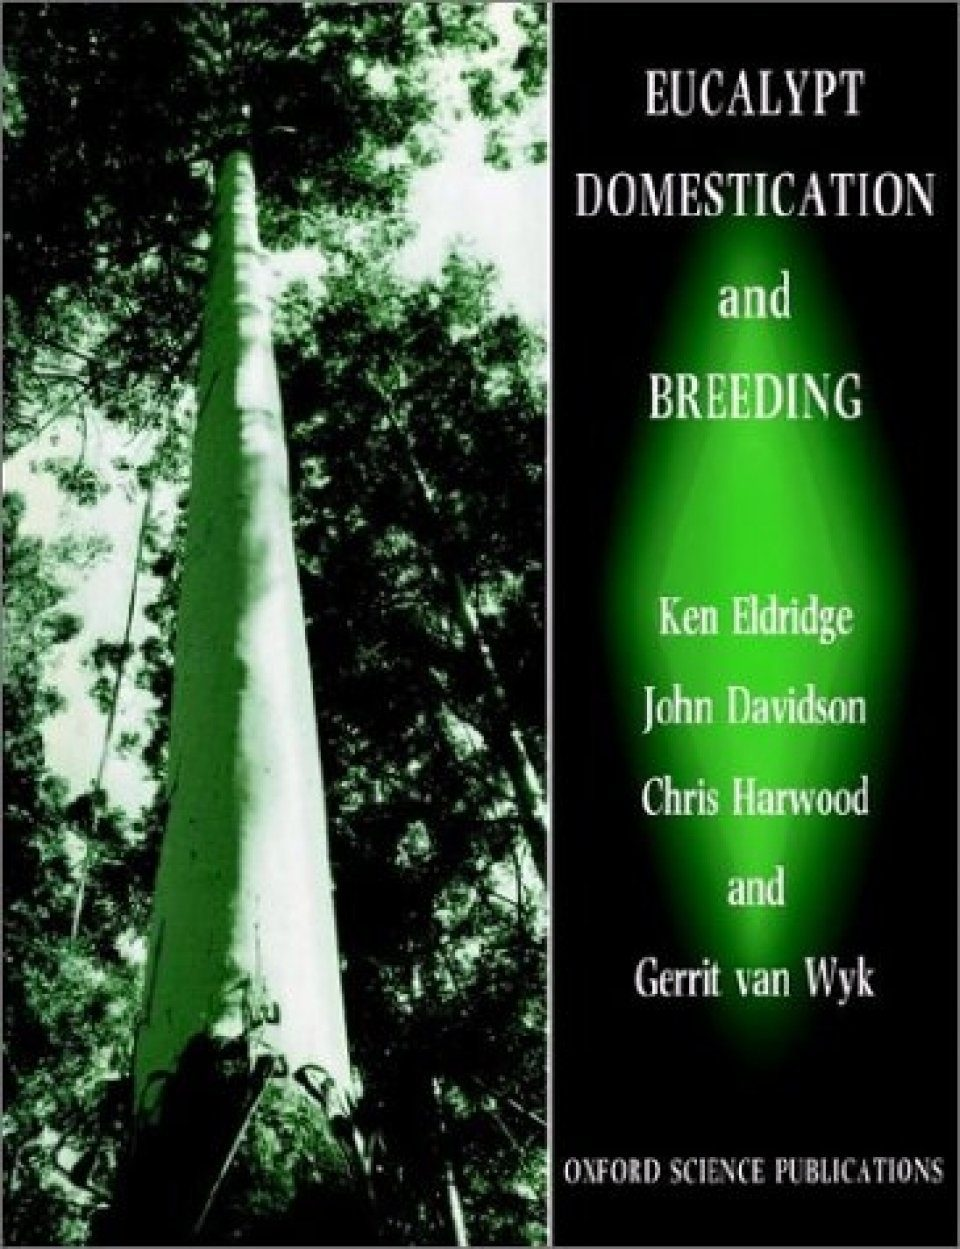 Eucalypt Domestication and Breeding